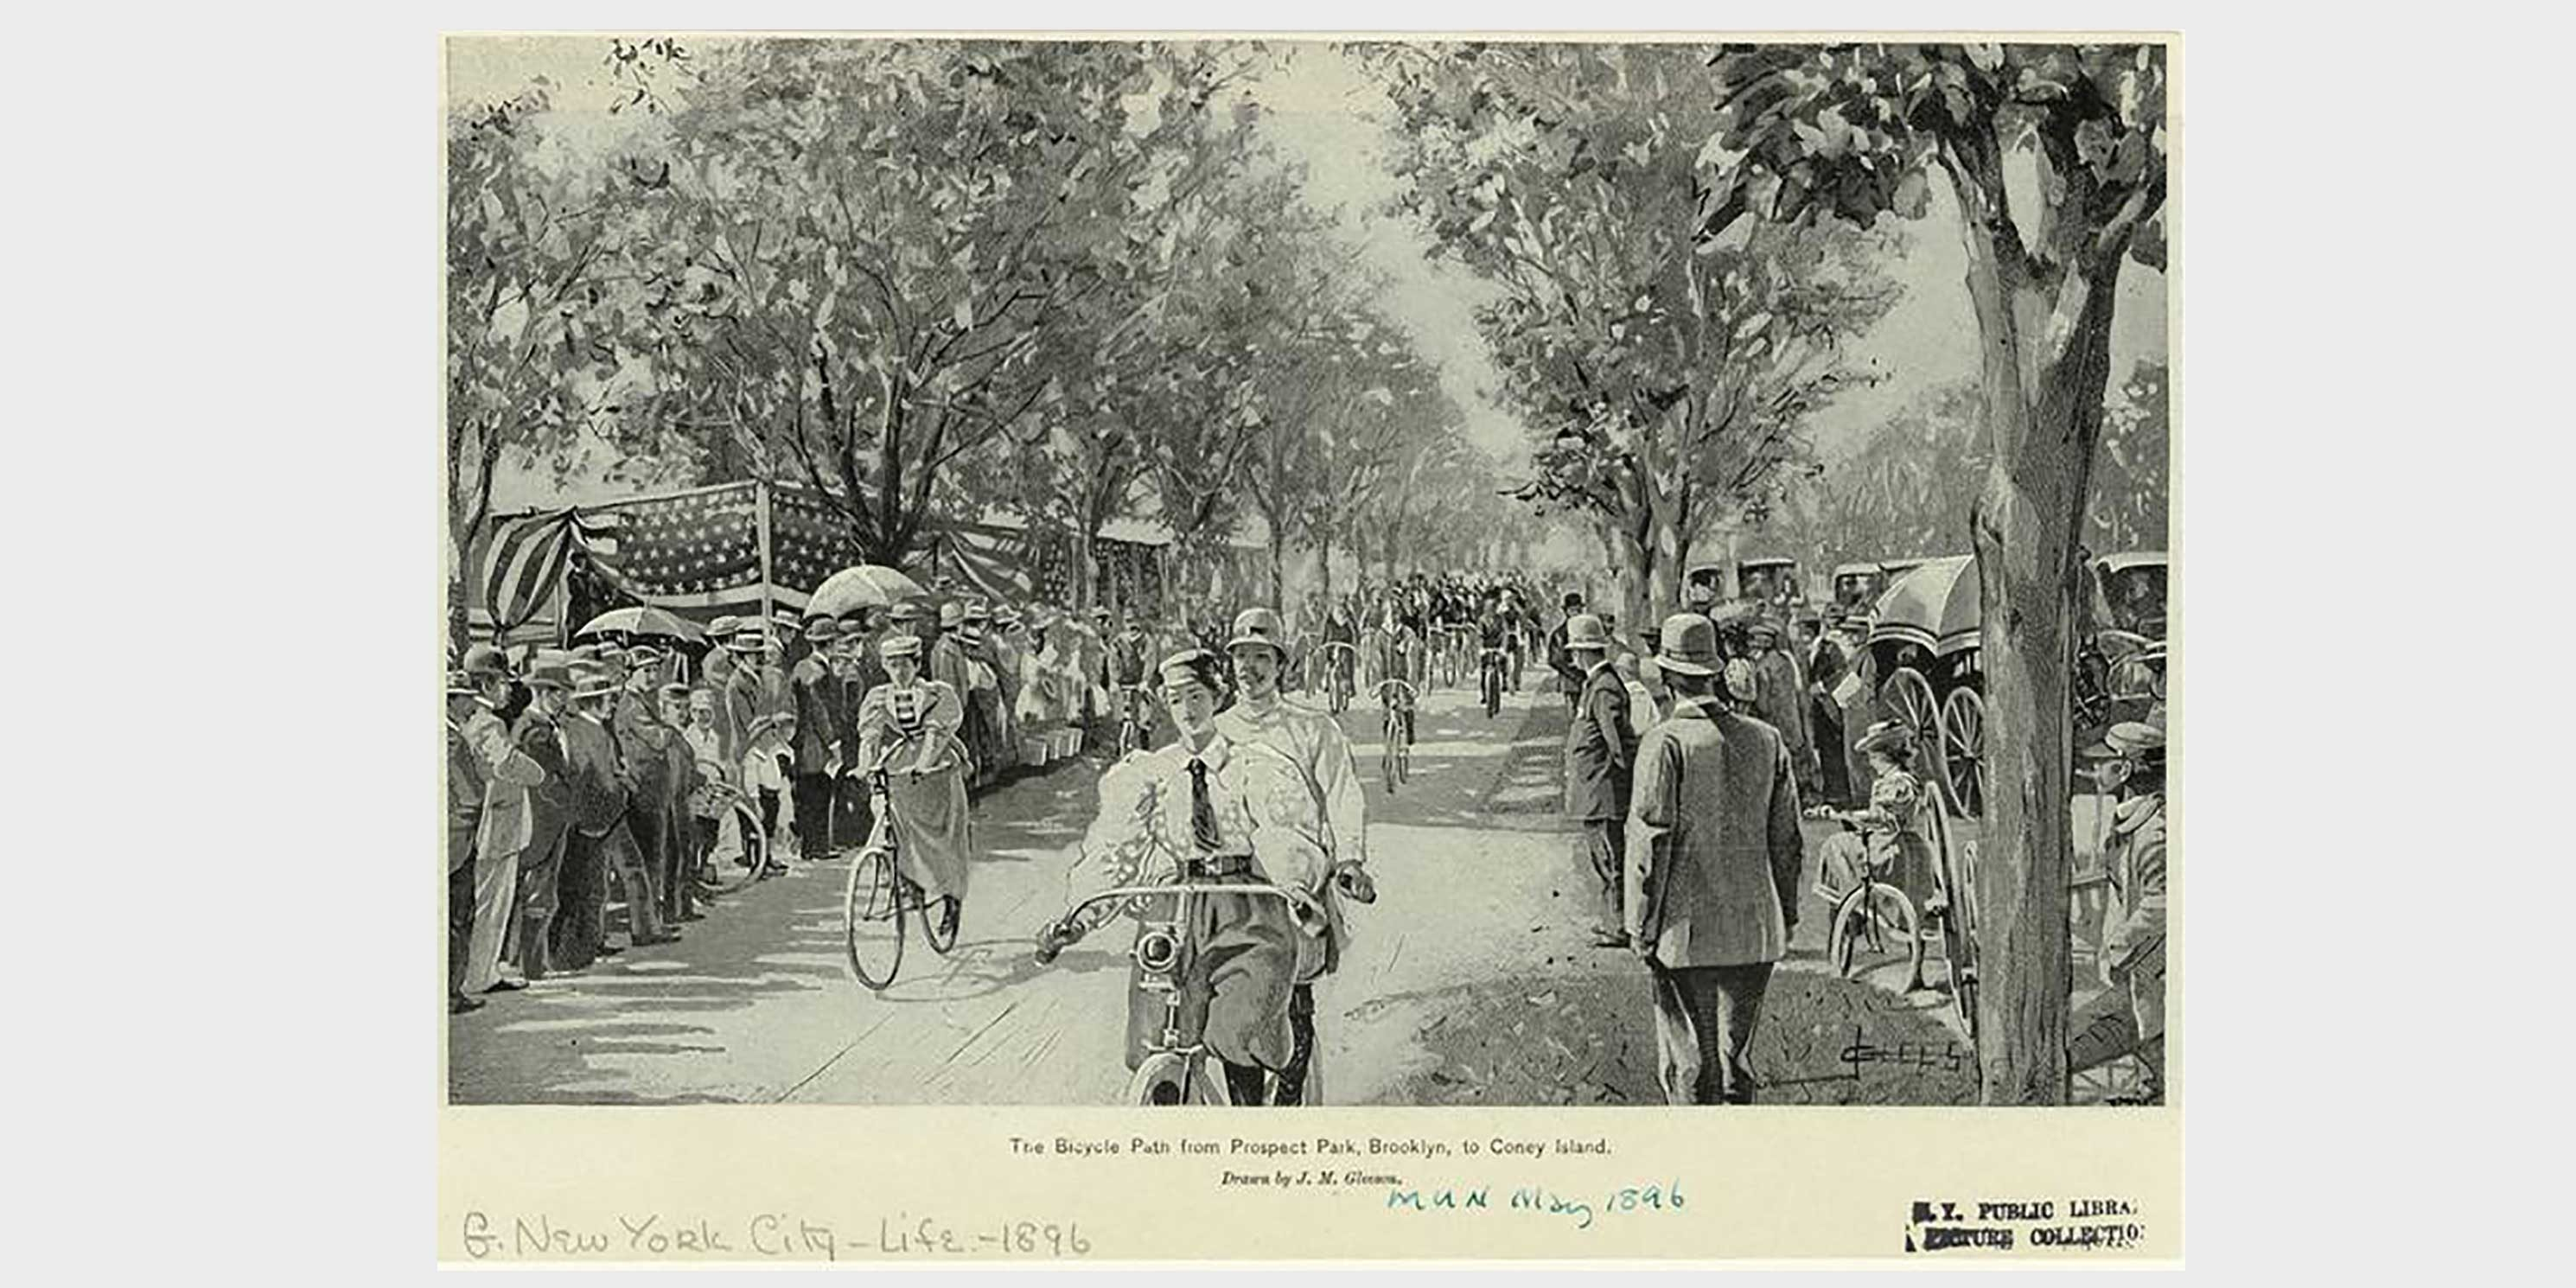 numerous cyclists ride on a bicycle path as people watch from roadside, 1896